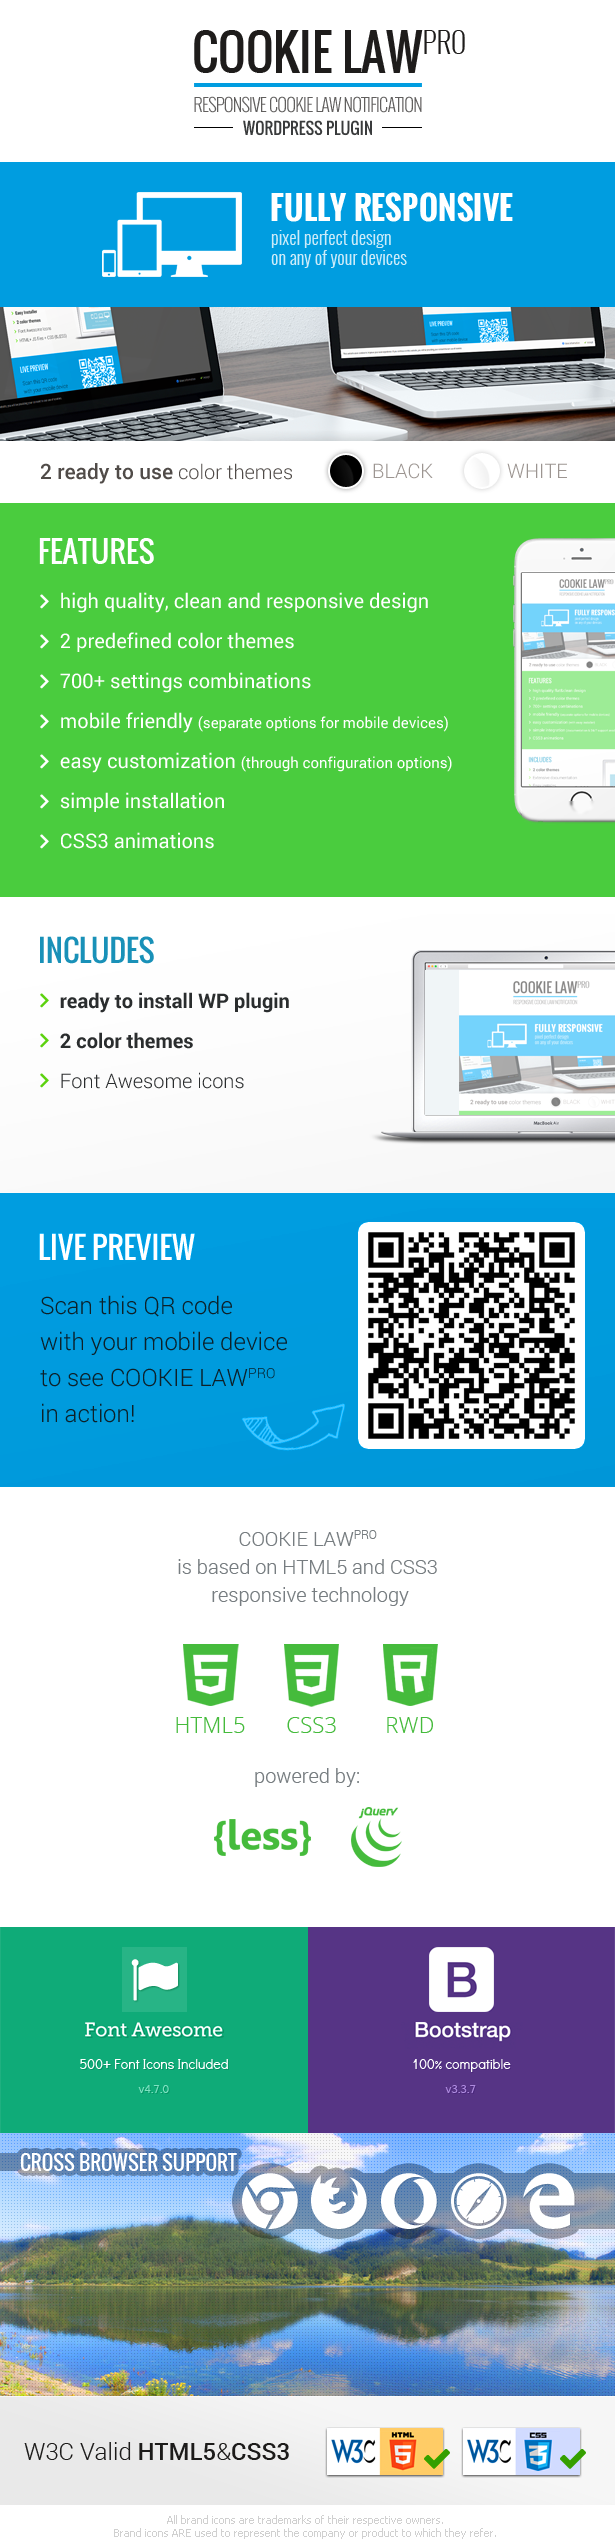 Responsive Cookie Law Consent Notification WP Plugin GDPR Compliance - 1